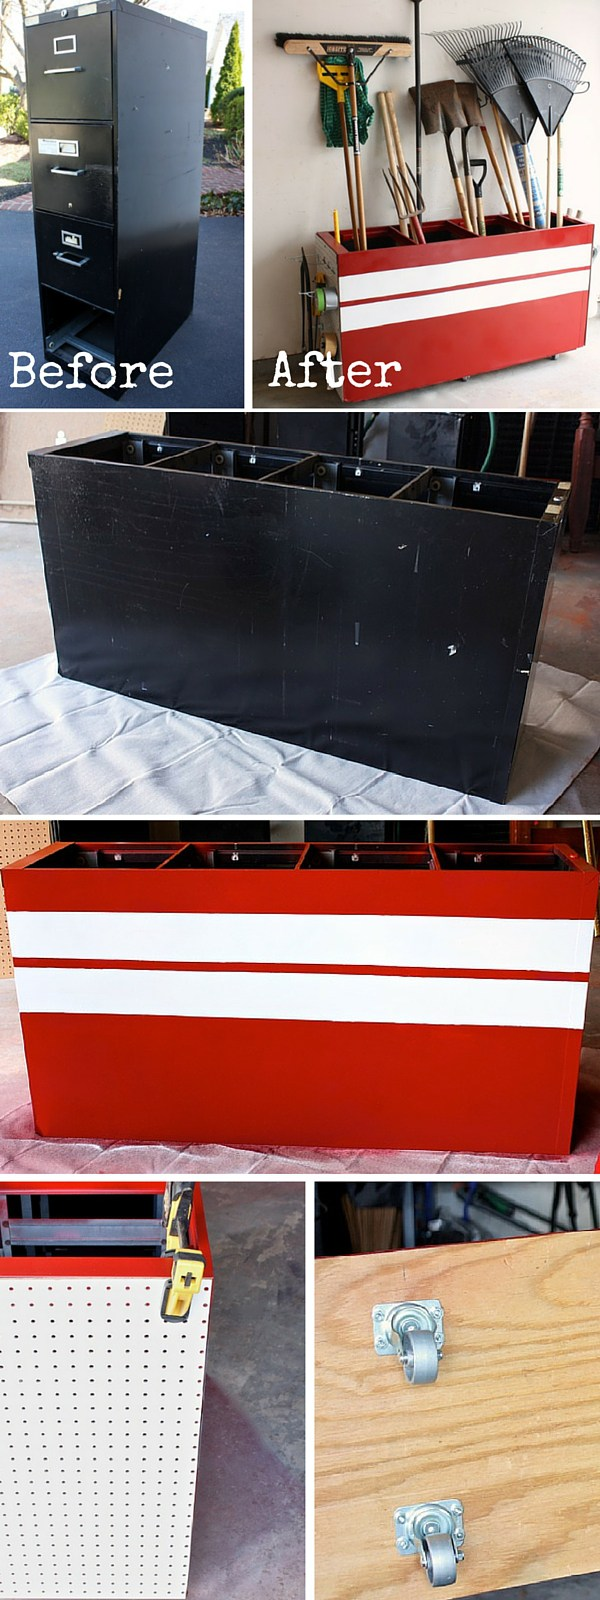 Old Filing Cabinet to a Garage Storage Unit. Turn a filing cabinet into a creative storage unit to keep various tools and household items in your garage.